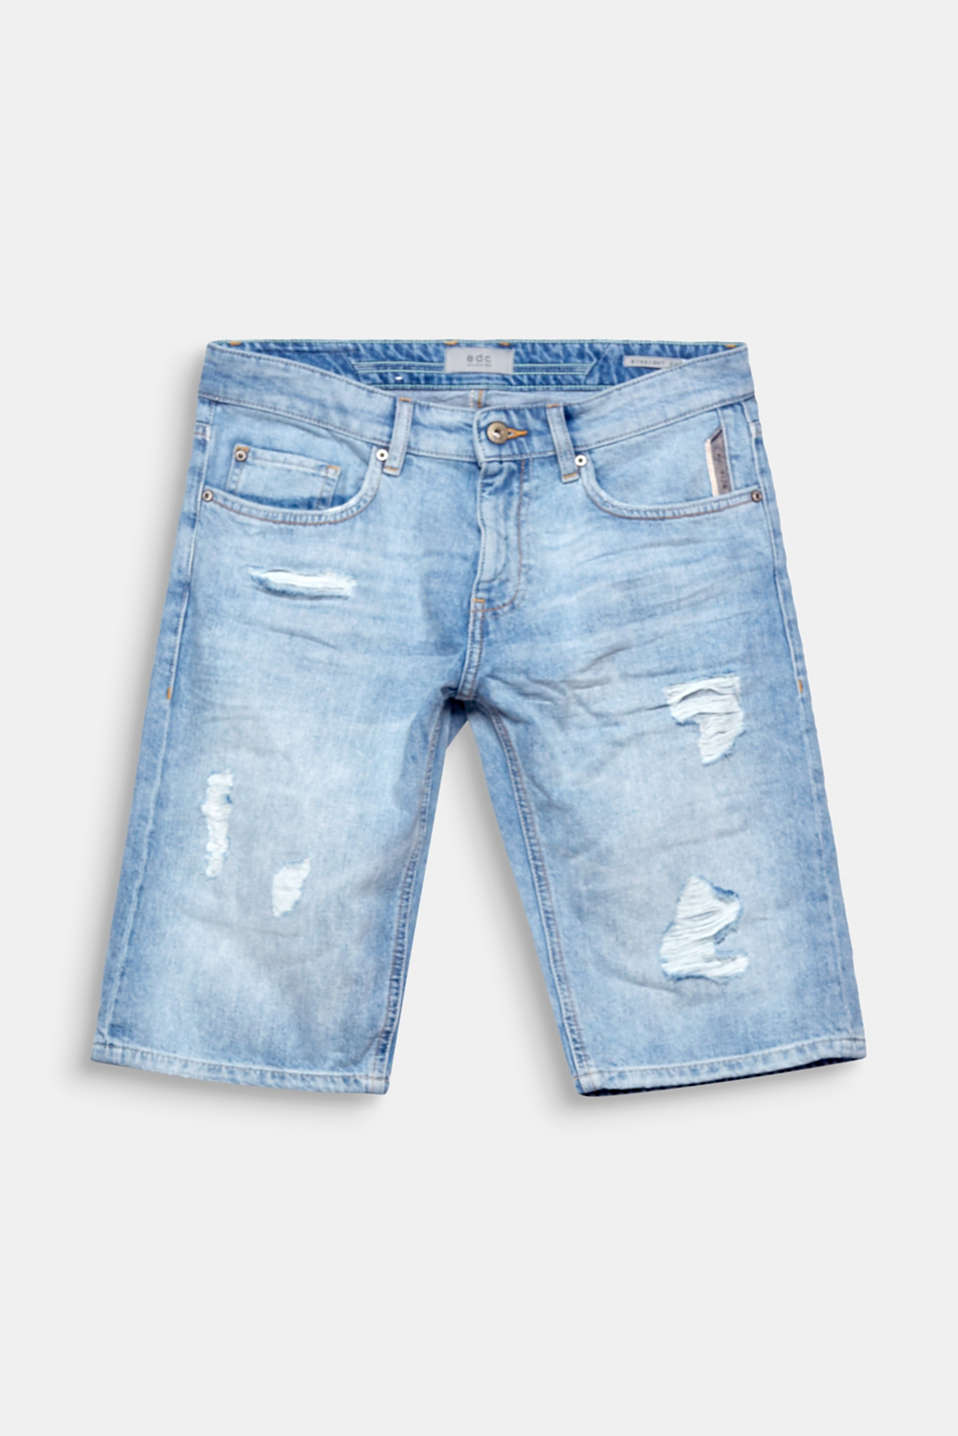 We love Destroyed Denim! Für deinen urbanen Summer Look ist diese Shorts das perfekte Essential.